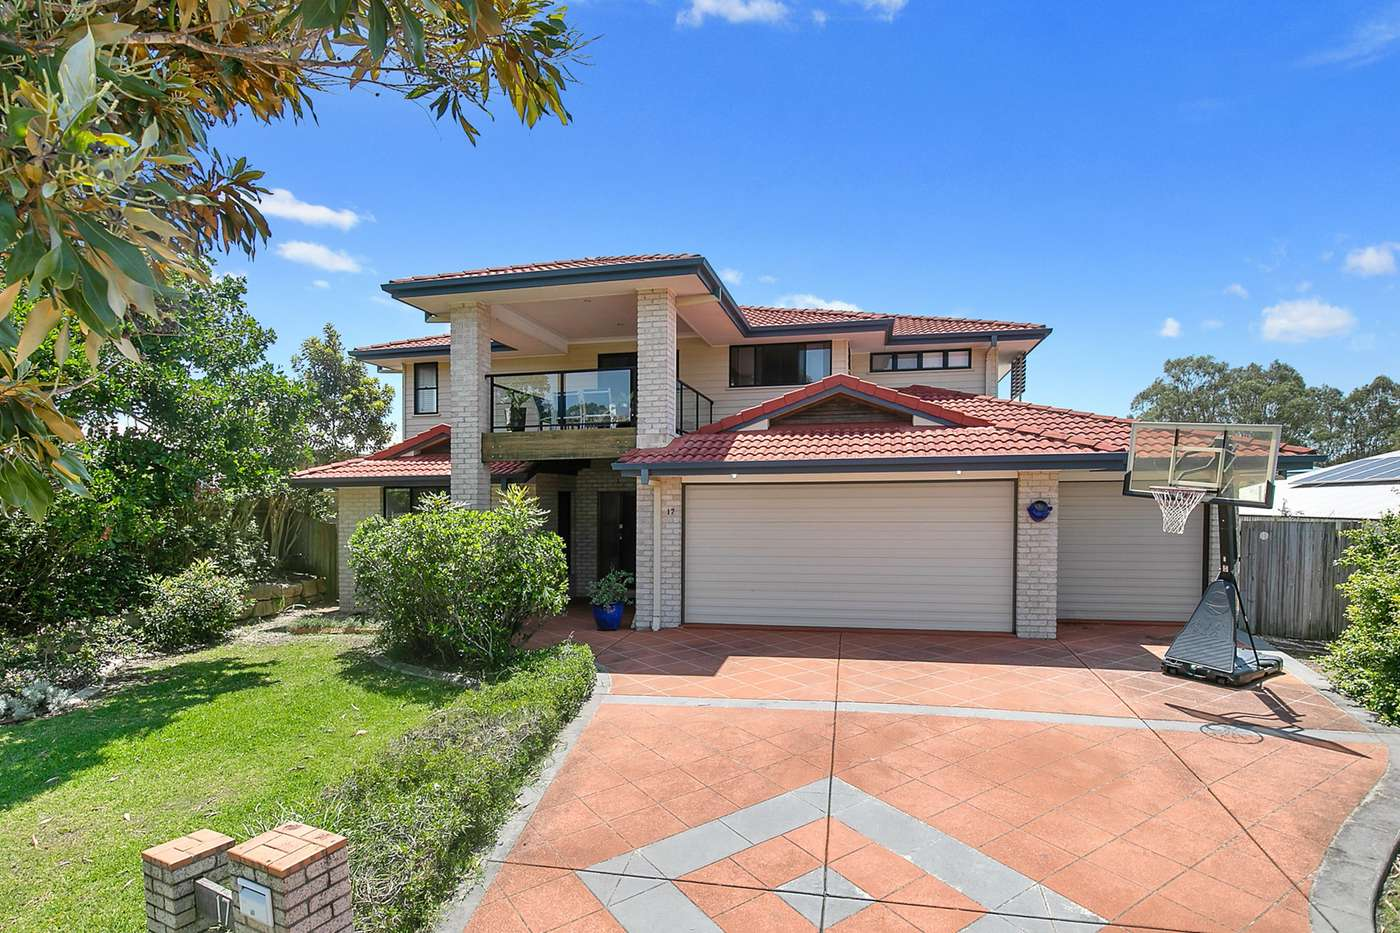 Main view of Homely house listing, 17 Trafalgar Vale Avenue, Wellington Point, QLD 4160